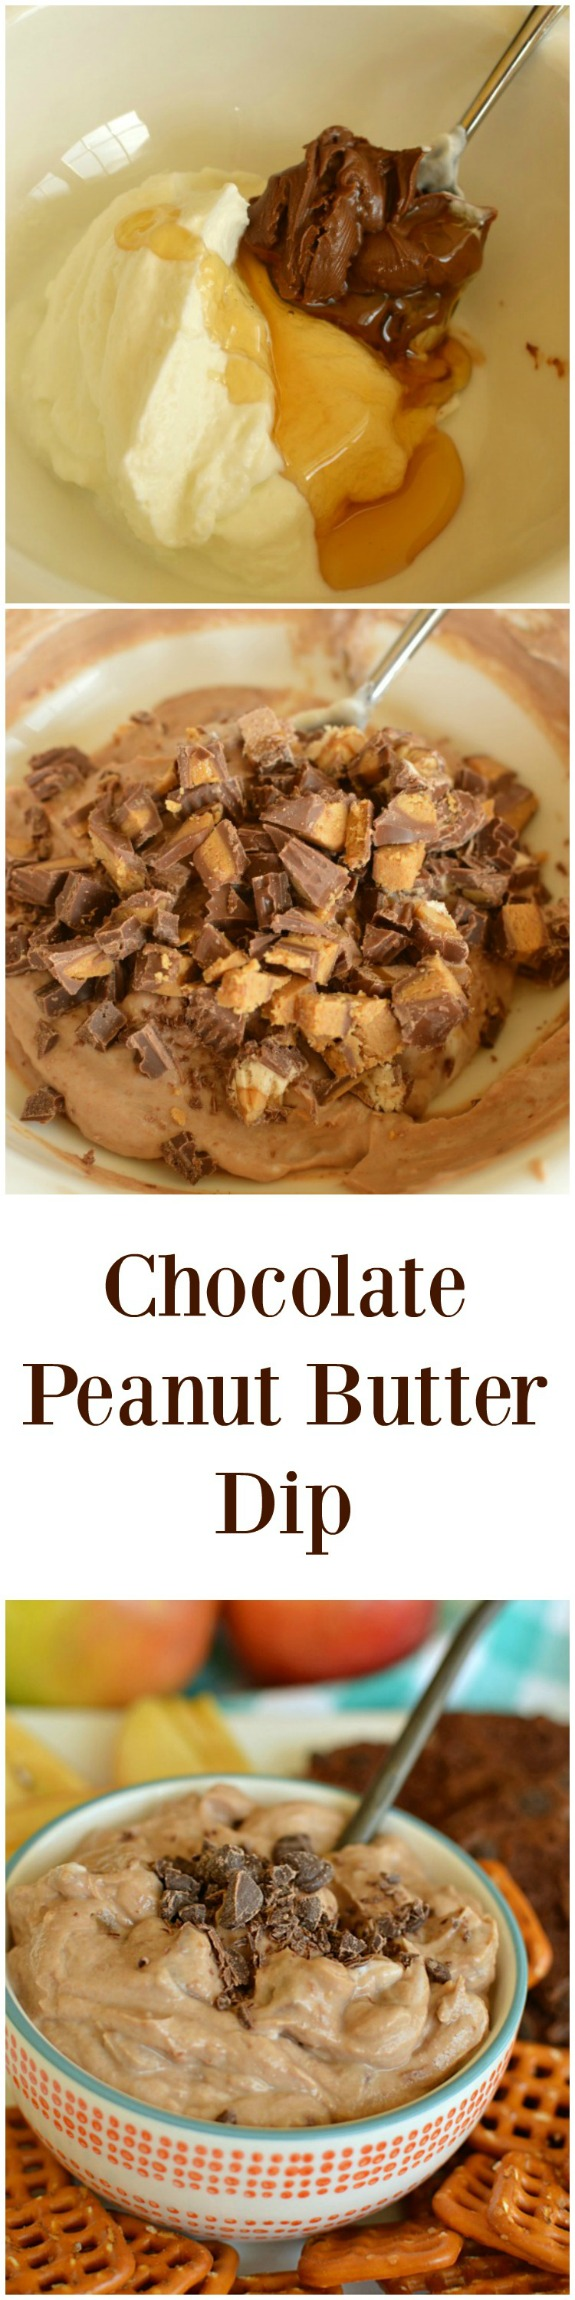 Chocolate Peanut Butter Dip! Dippers optional!